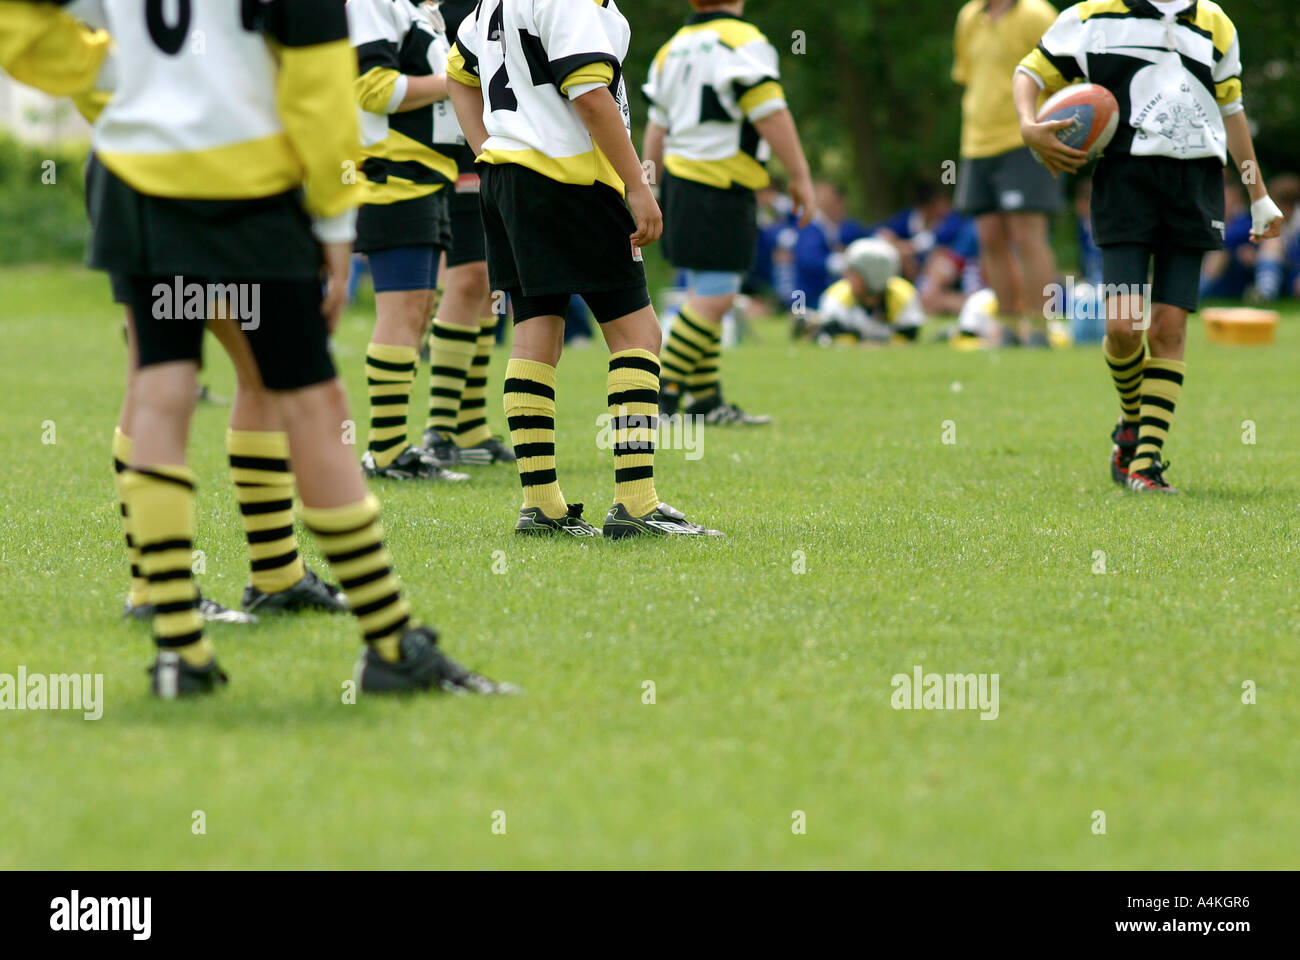 Rugby match, low section - Stock Image